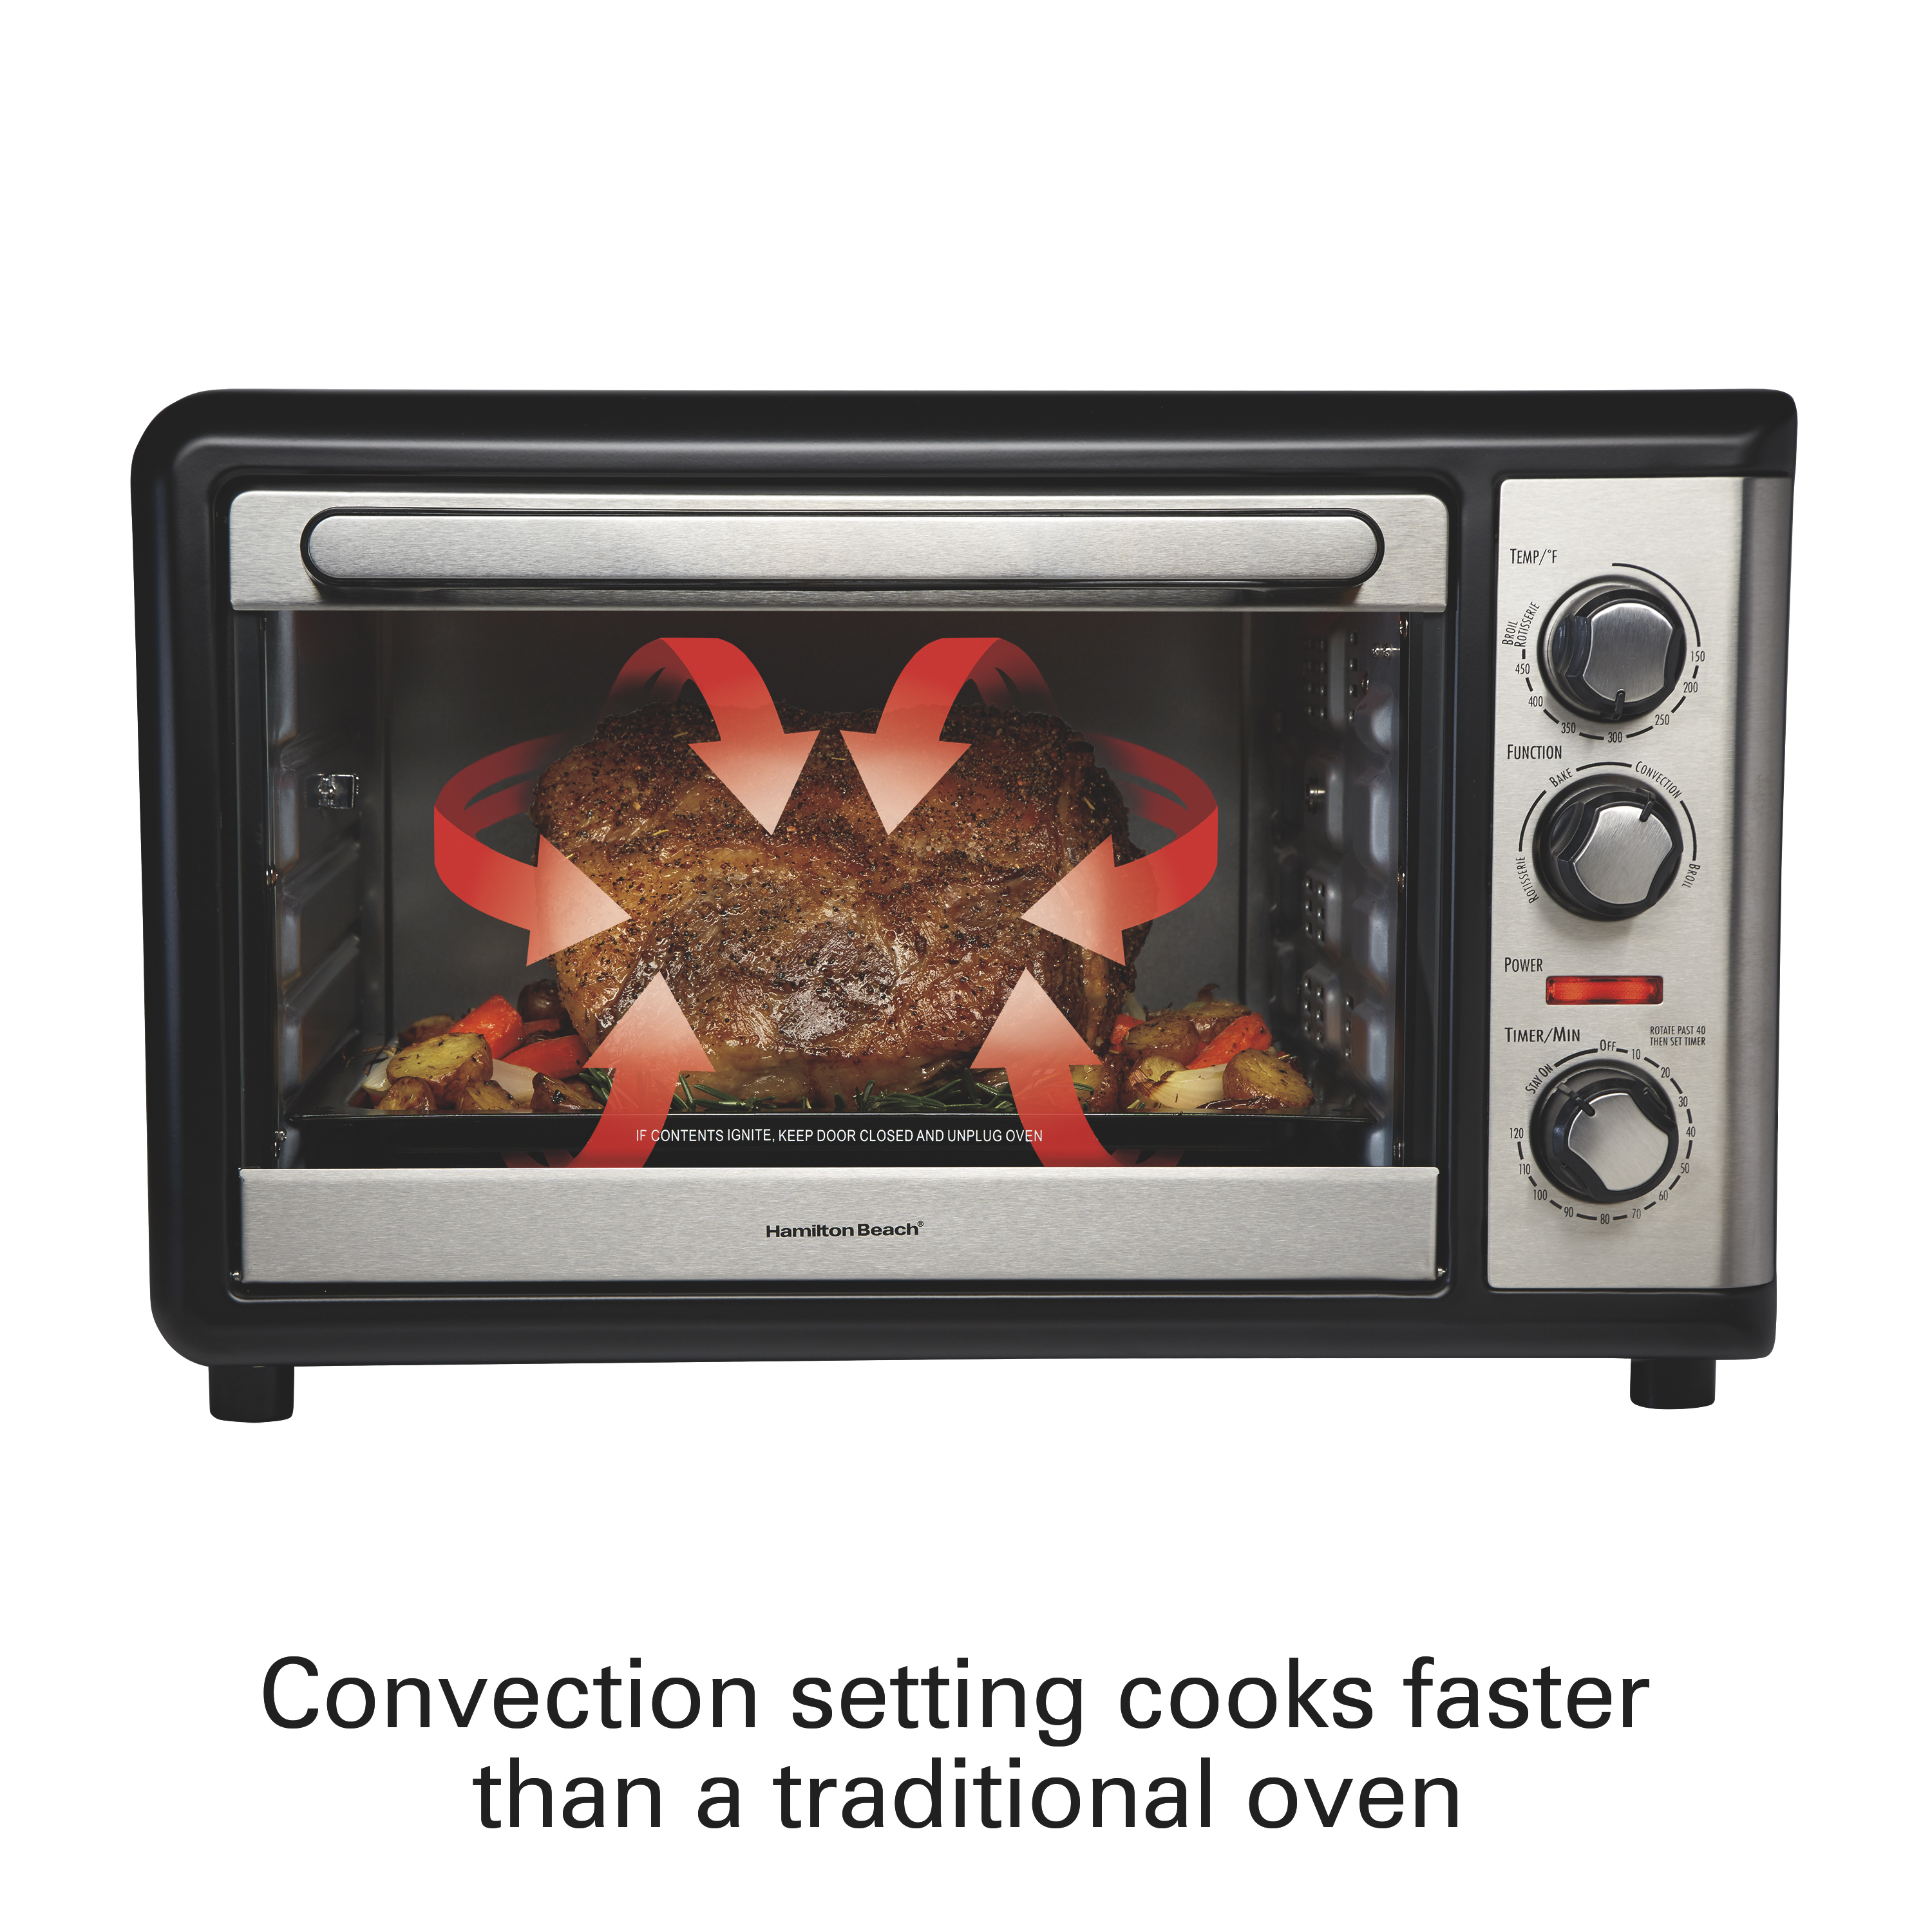 inch countertops product digital today countertop garden convection kitchenaid oven home overstock shipping stainless steel large free